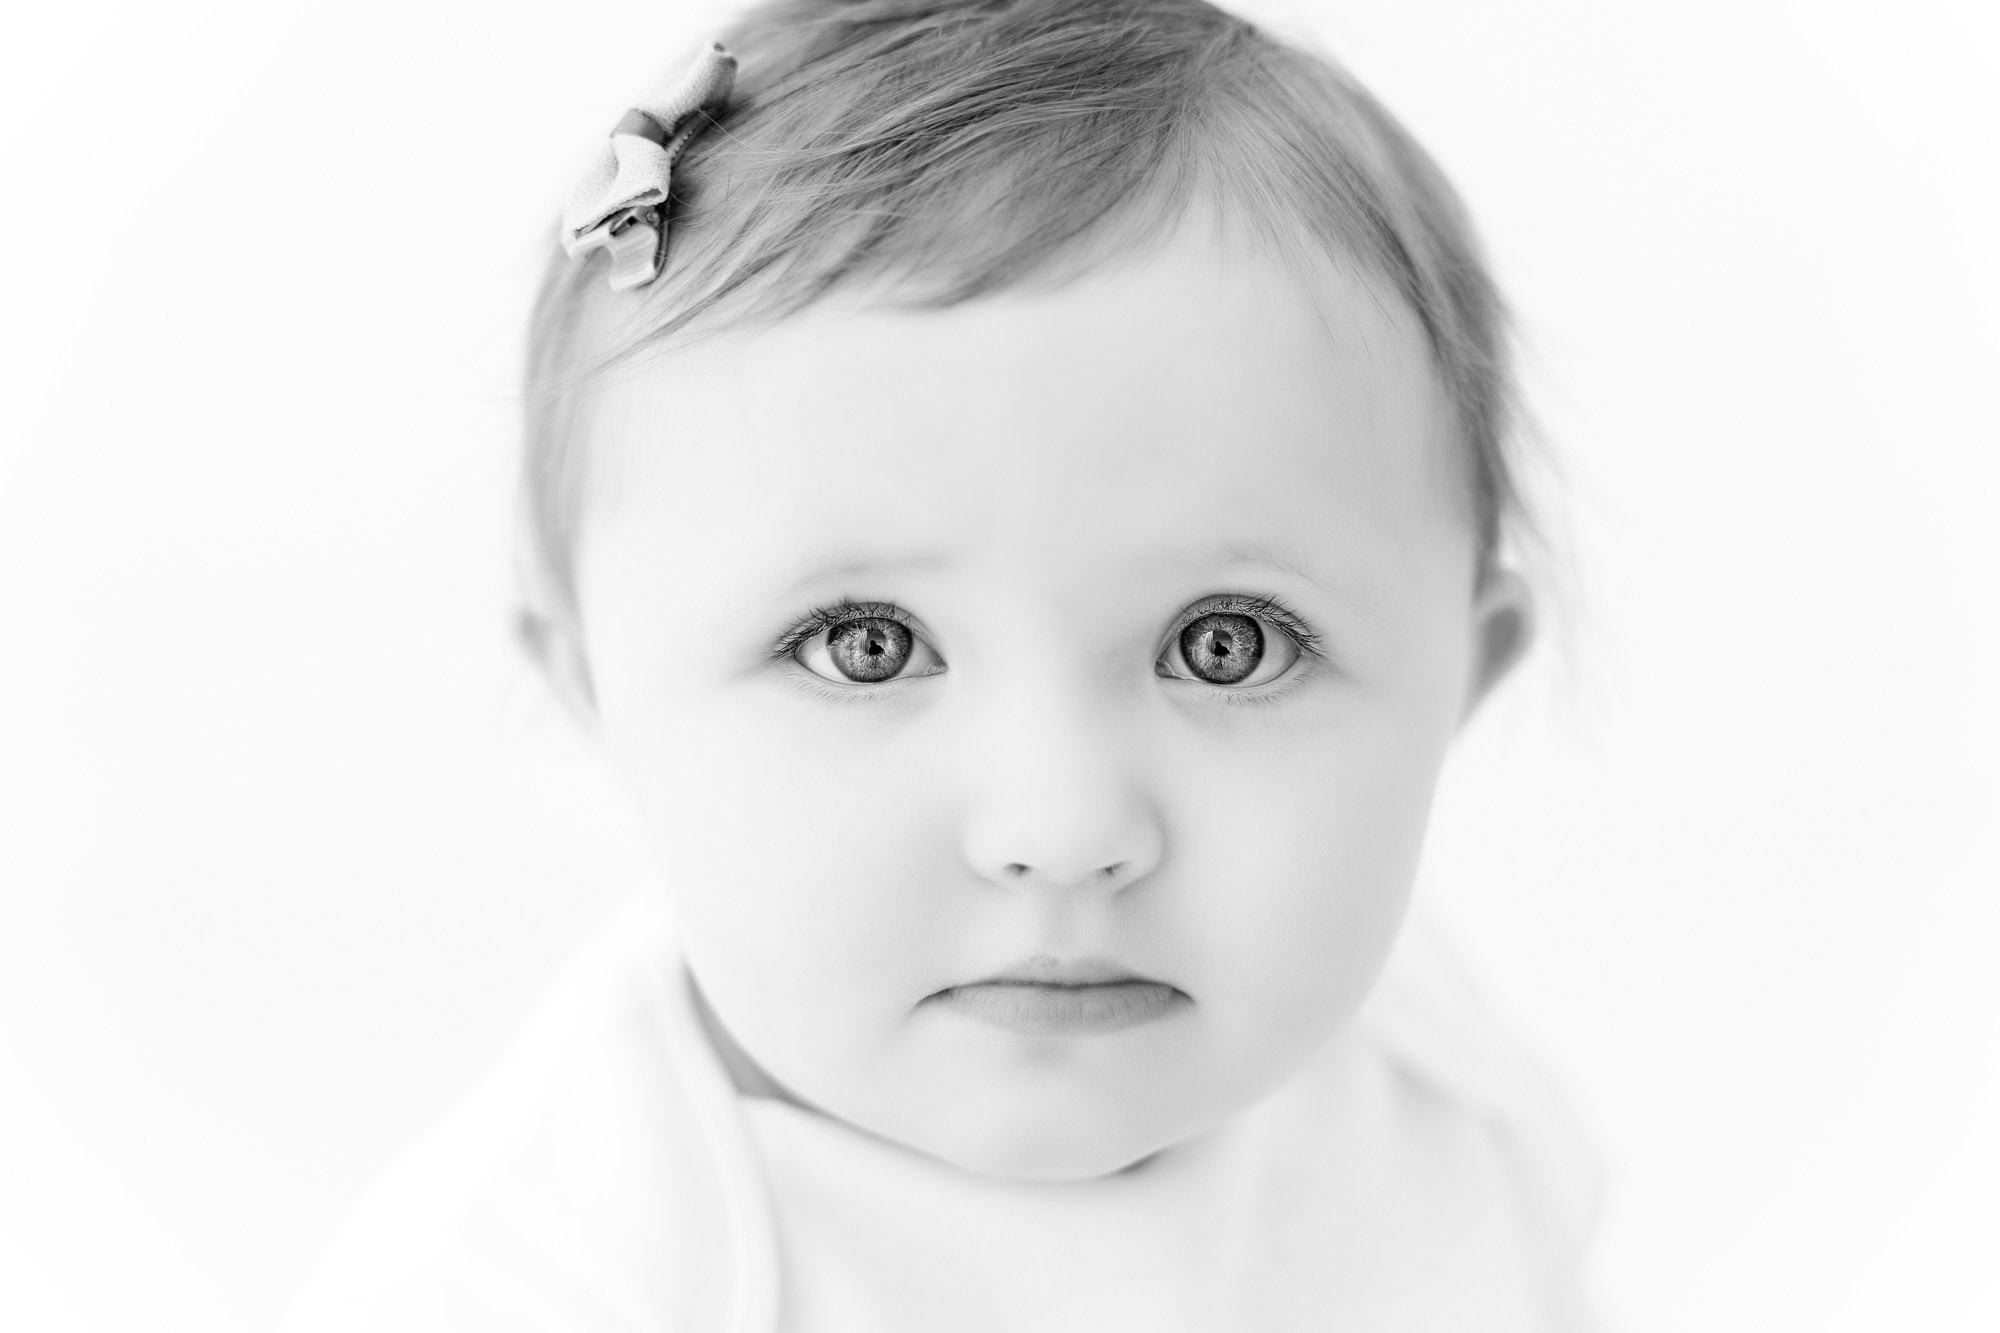 norfolk baby photographer  captures close up black and white image